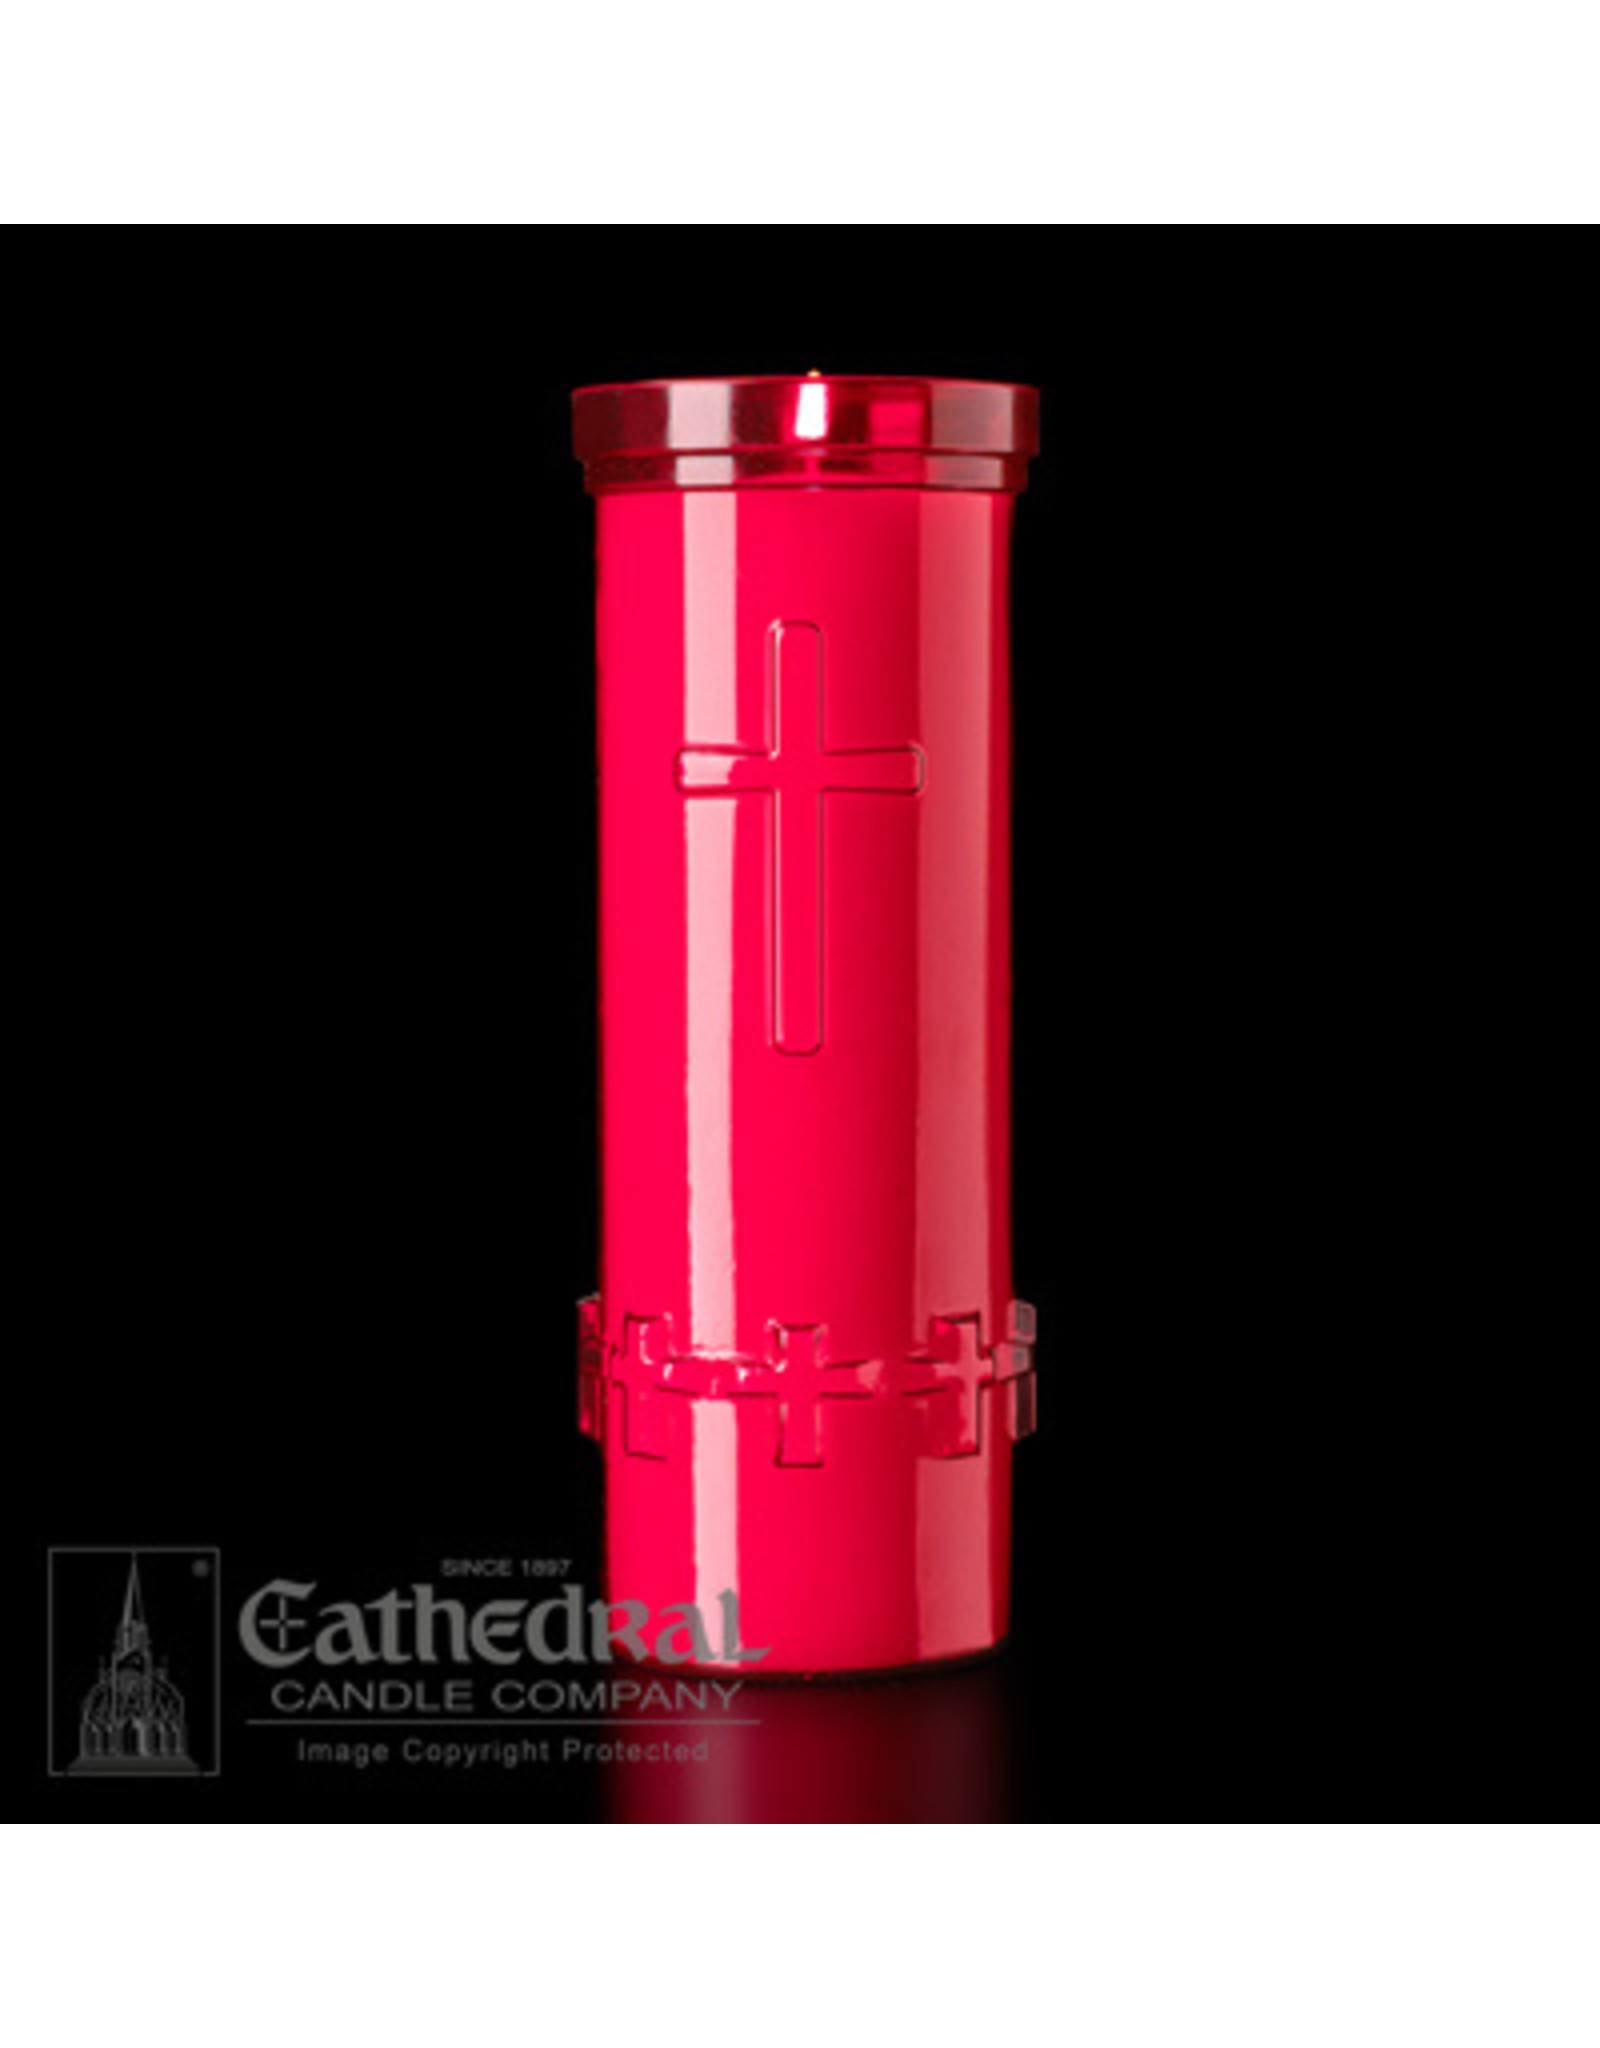 CNDL DEVOTIONA-LITE 6-DAY RUBY PLASTIC (24)